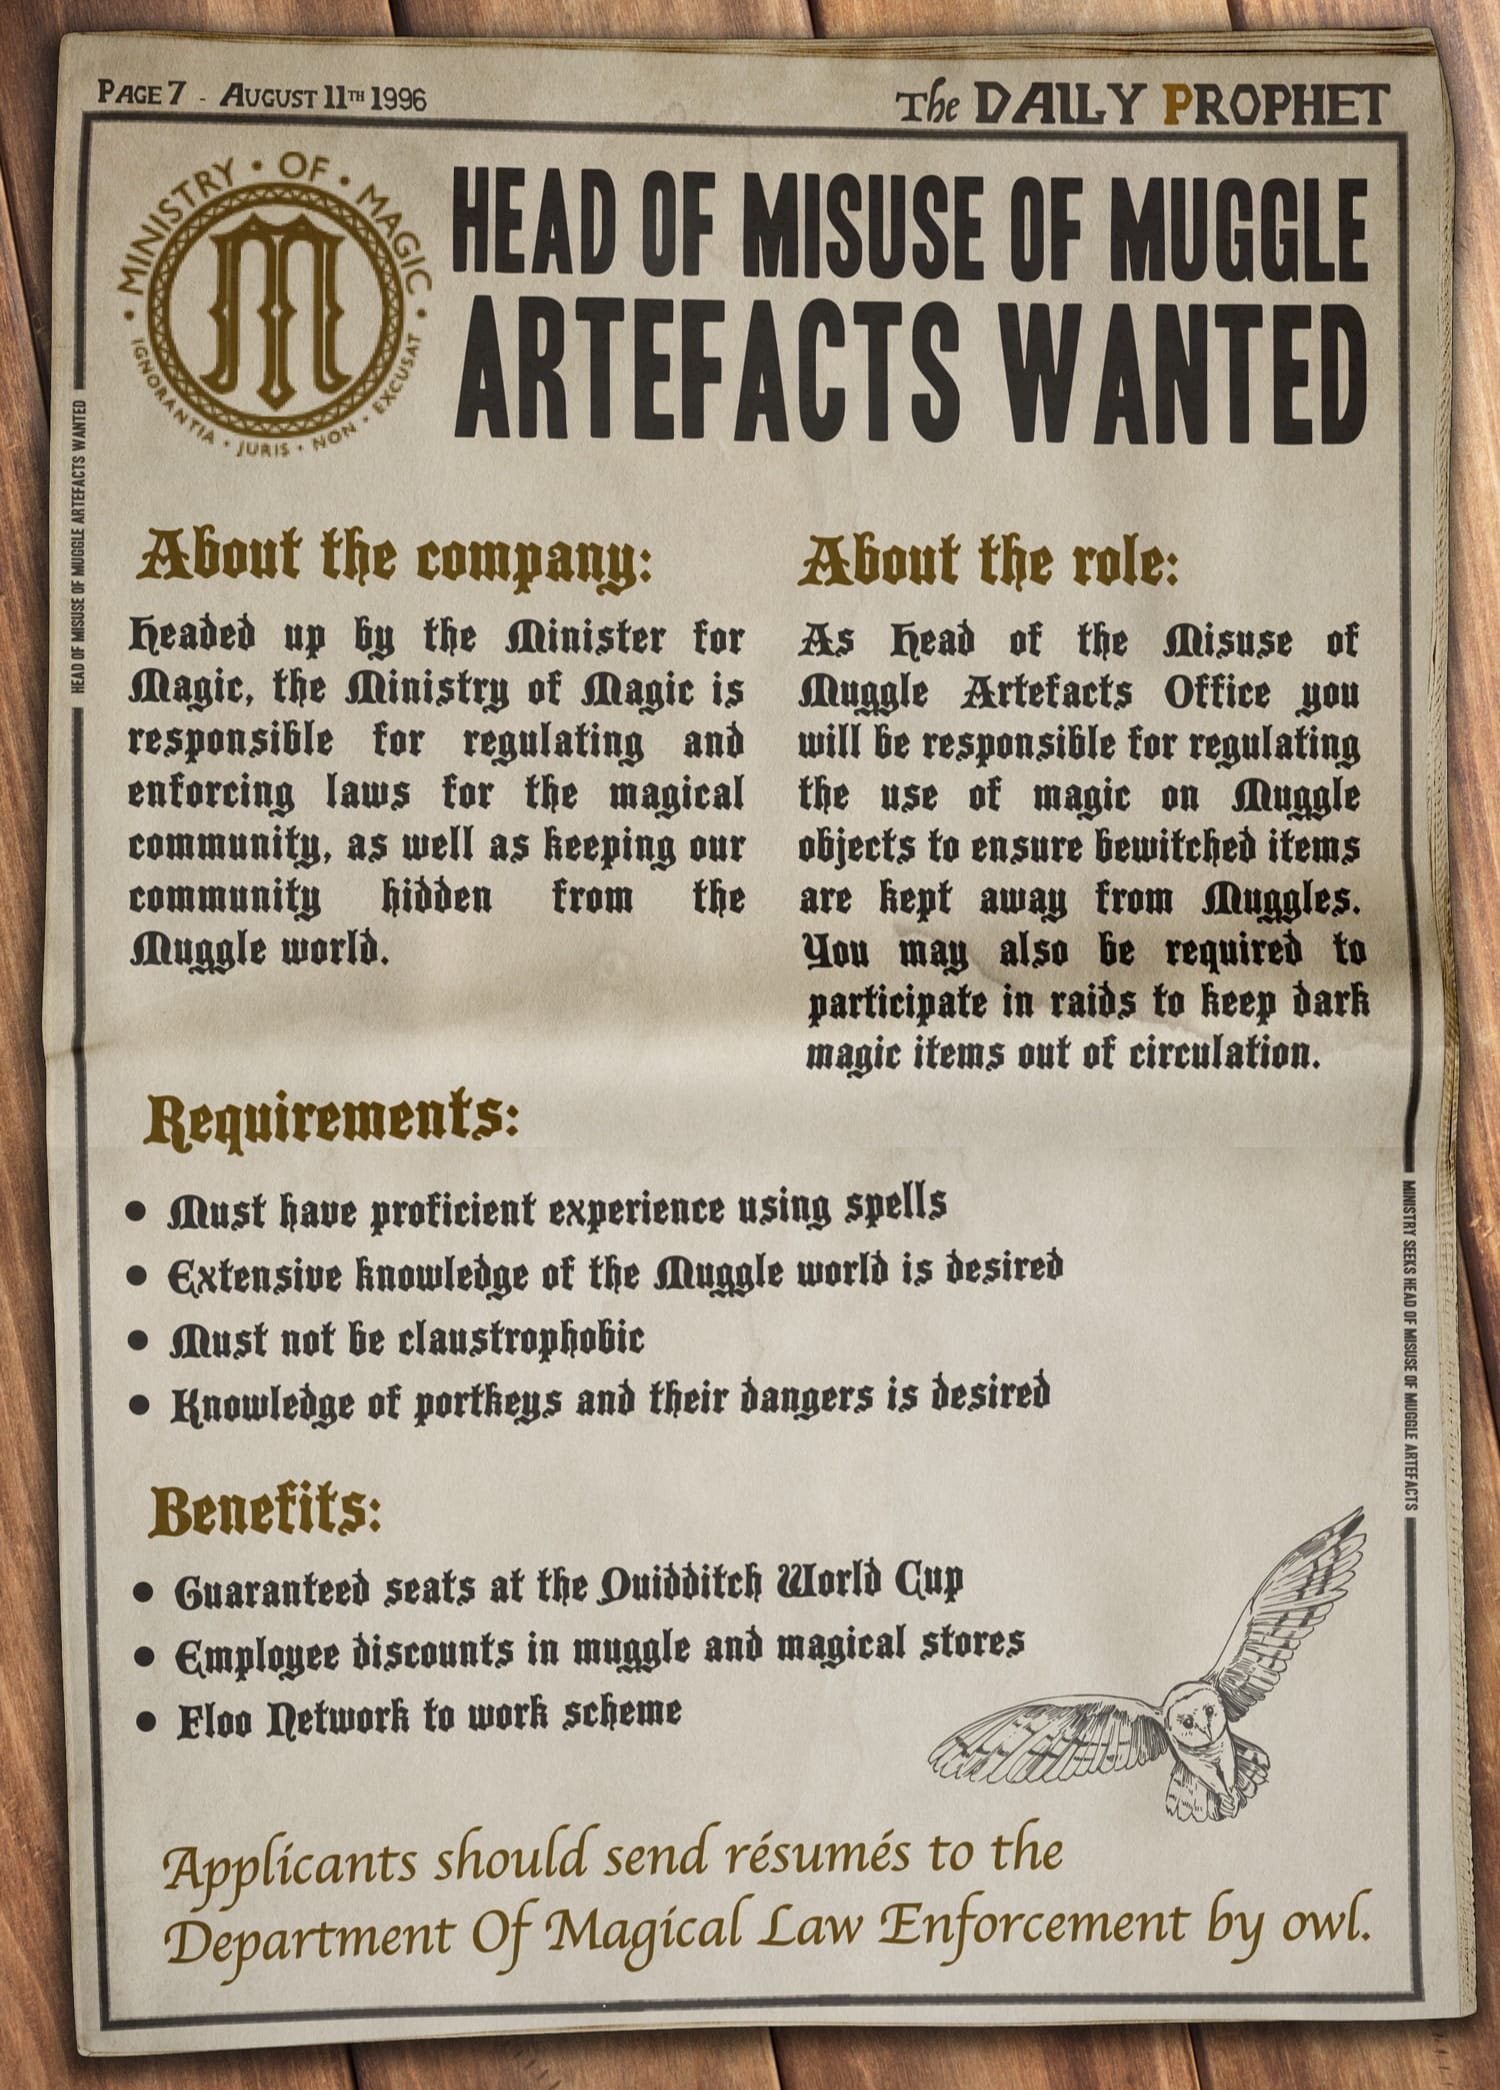 Fictional Harry Potter recruitment poster - Ministry of Magic's advertisement for Head of Misuse of Muggle Artefacts in the Daily Prophet